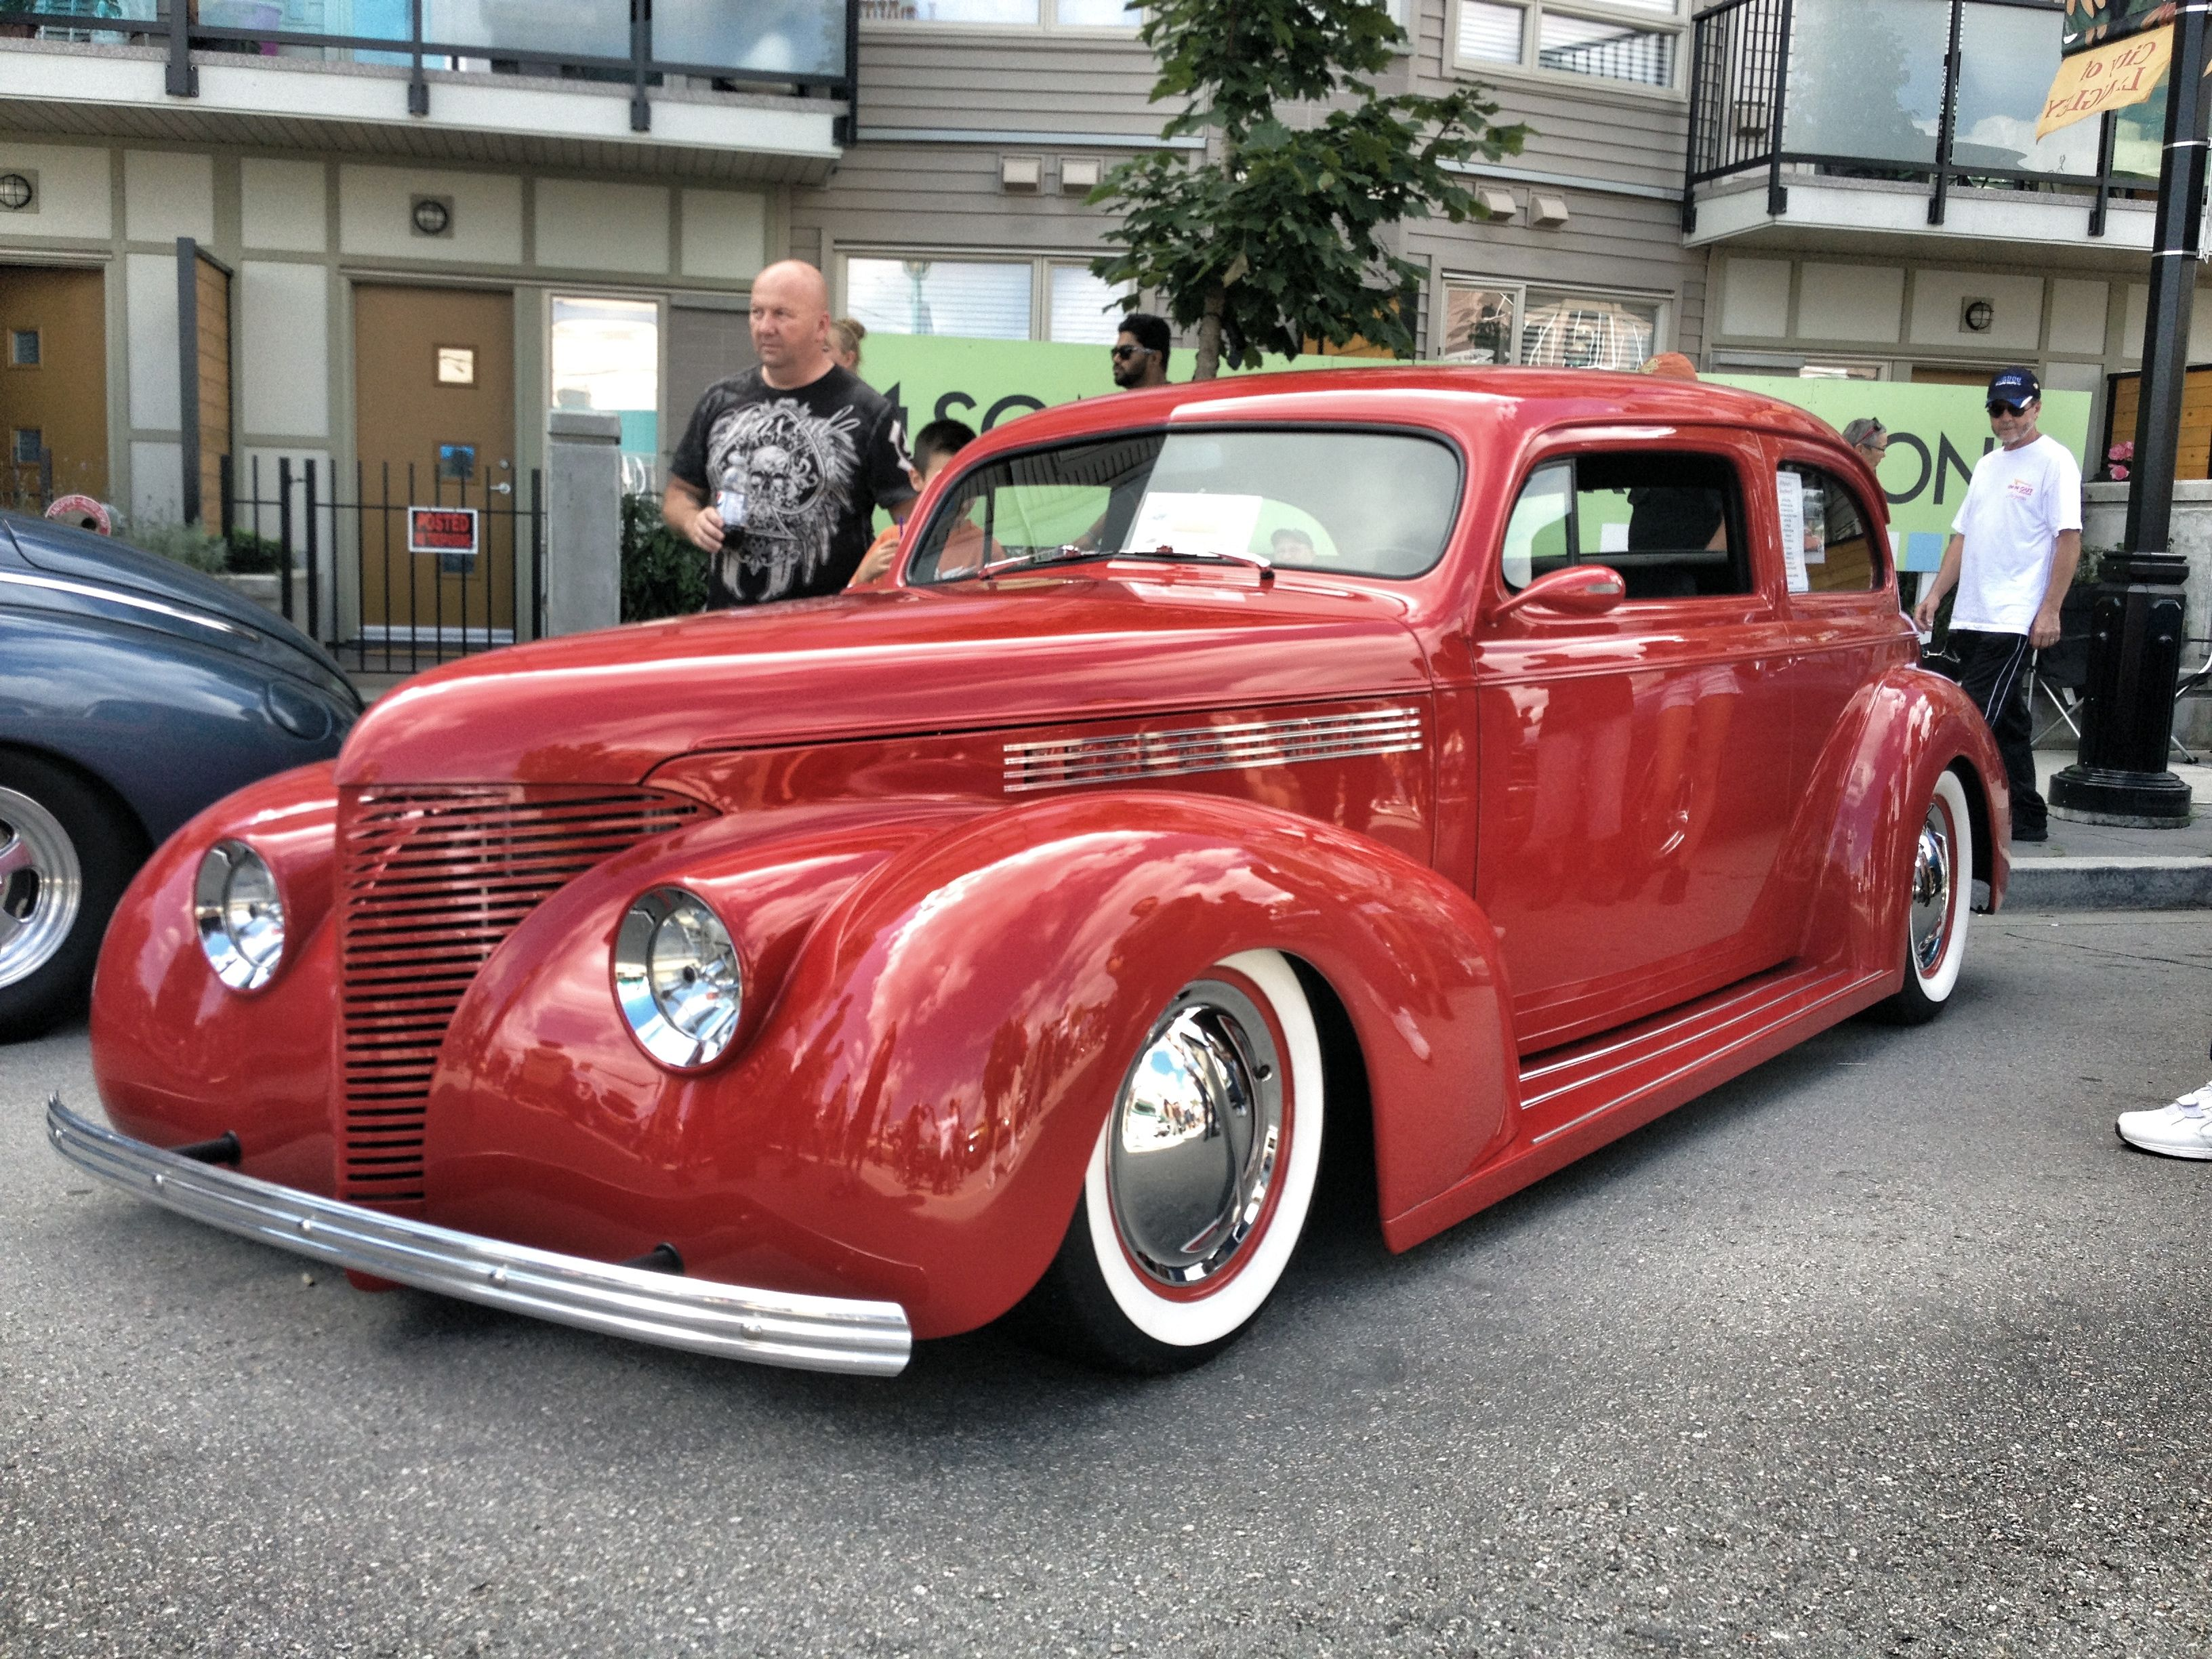 39\' Chevy #Langley Car Show 2013 | "|3264|2448|?|en|2|e9ce8f0a99f72cf455364a723b327d76|False|UNLIKELY|0.36182311177253723